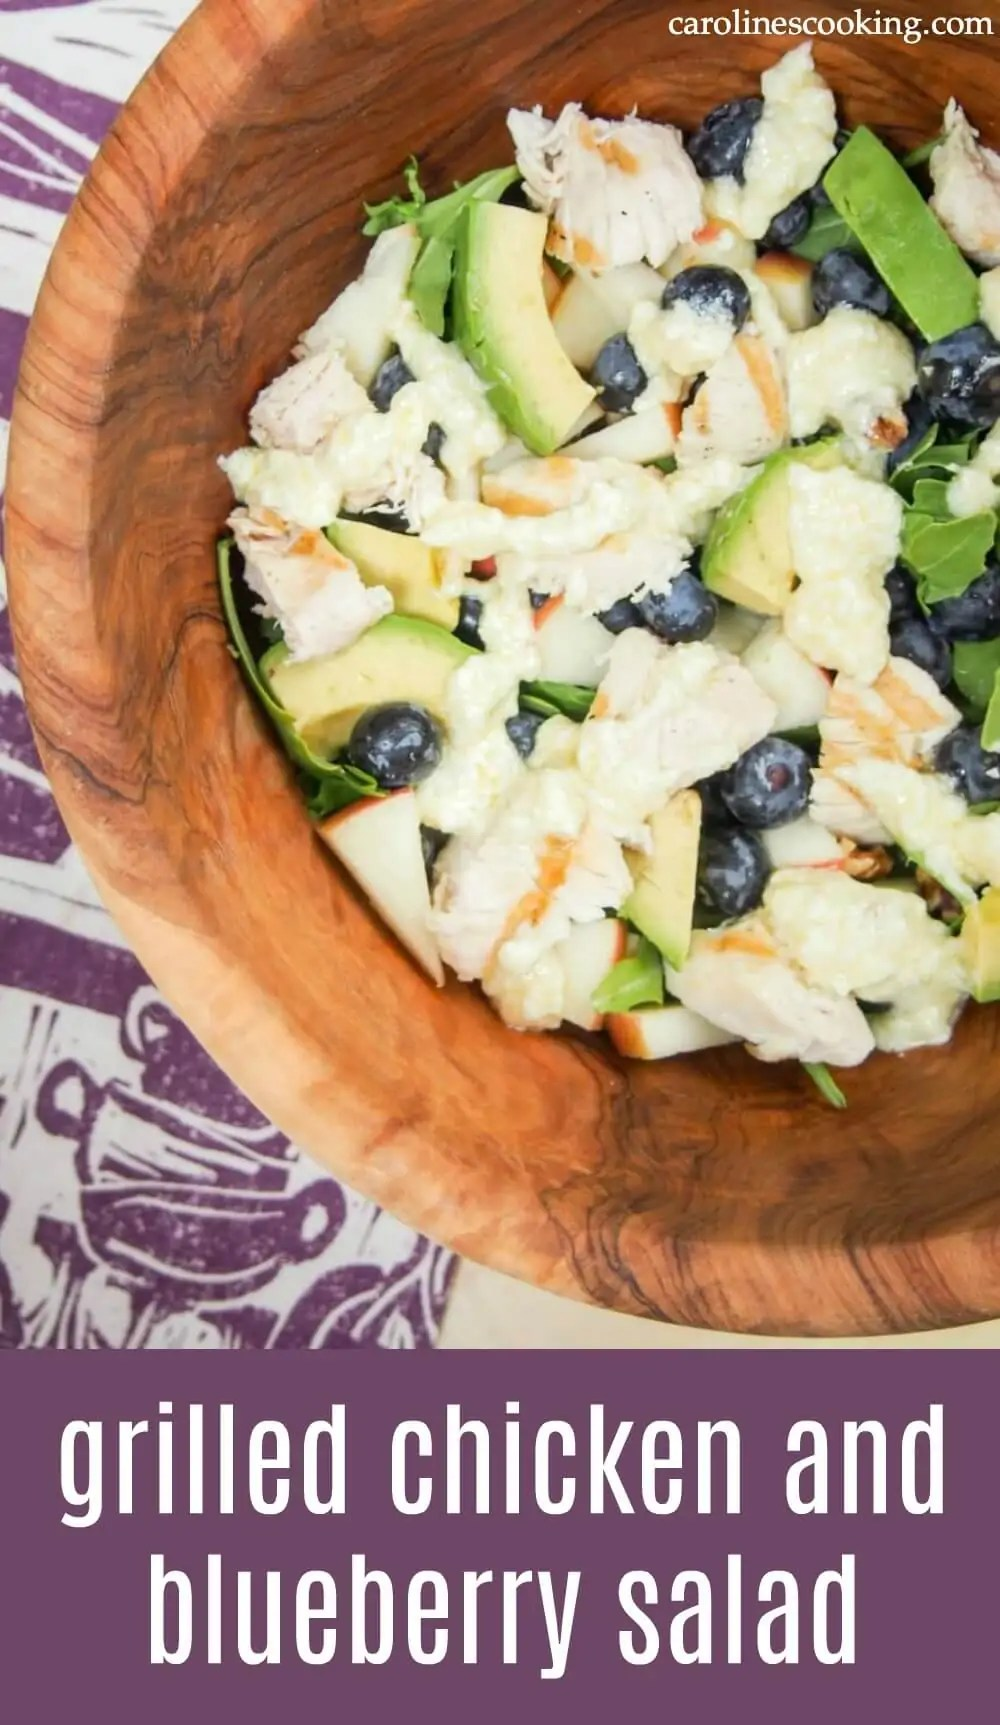 This grilled chicken and blueberry salad is healthy, easy to make & full of delicious flavors from the lemon-feta dressing to berries & nuts. A great lunch or light meal. #salad #grilledchicken